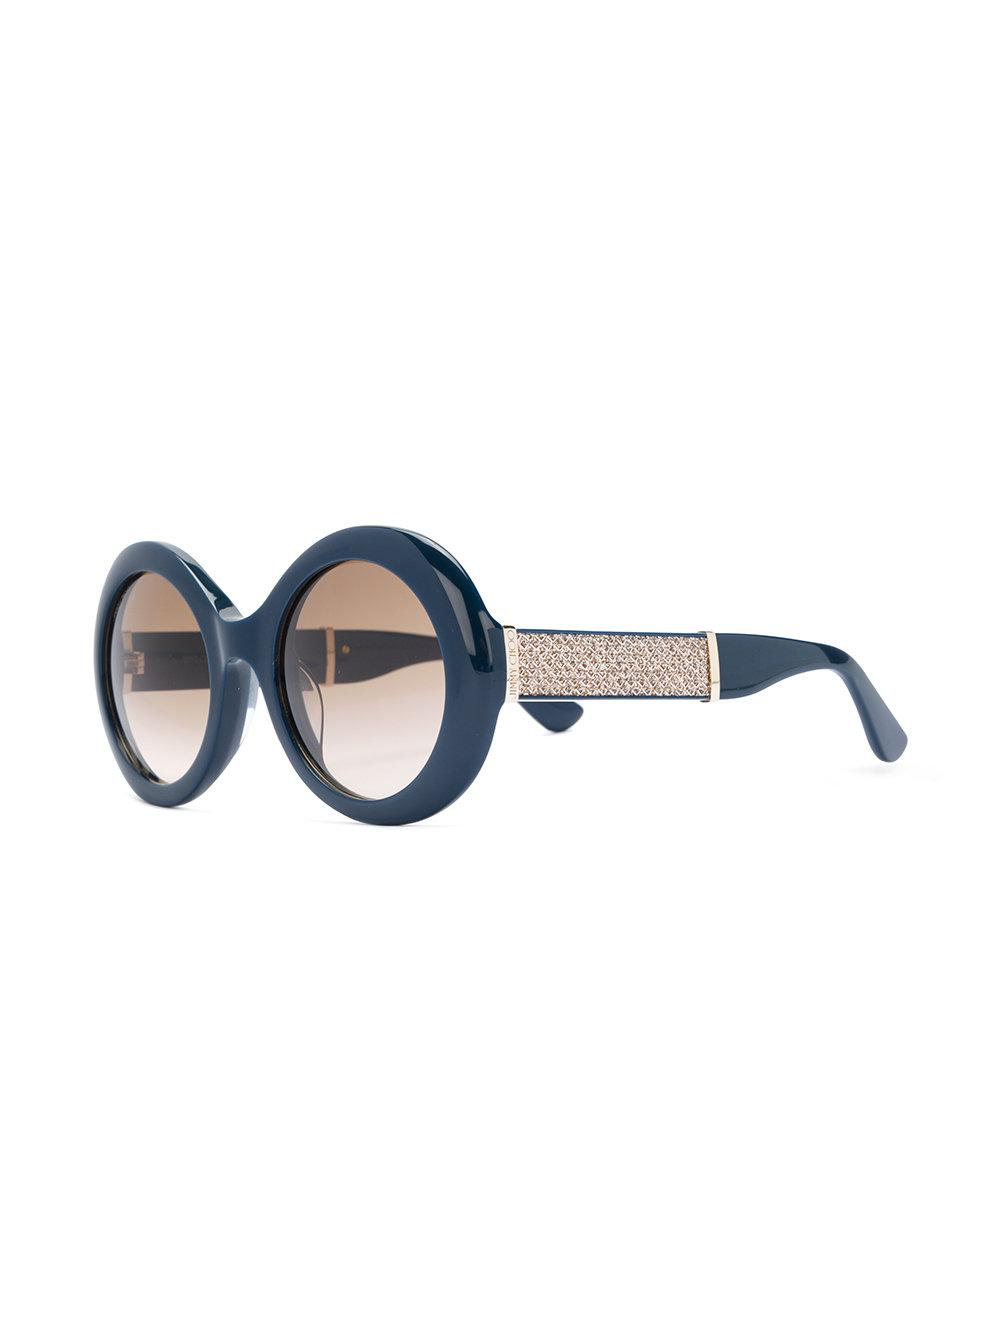 8cfe1556a5 Lyst - Jimmy Choo Wendy s Sunglasses in Blue